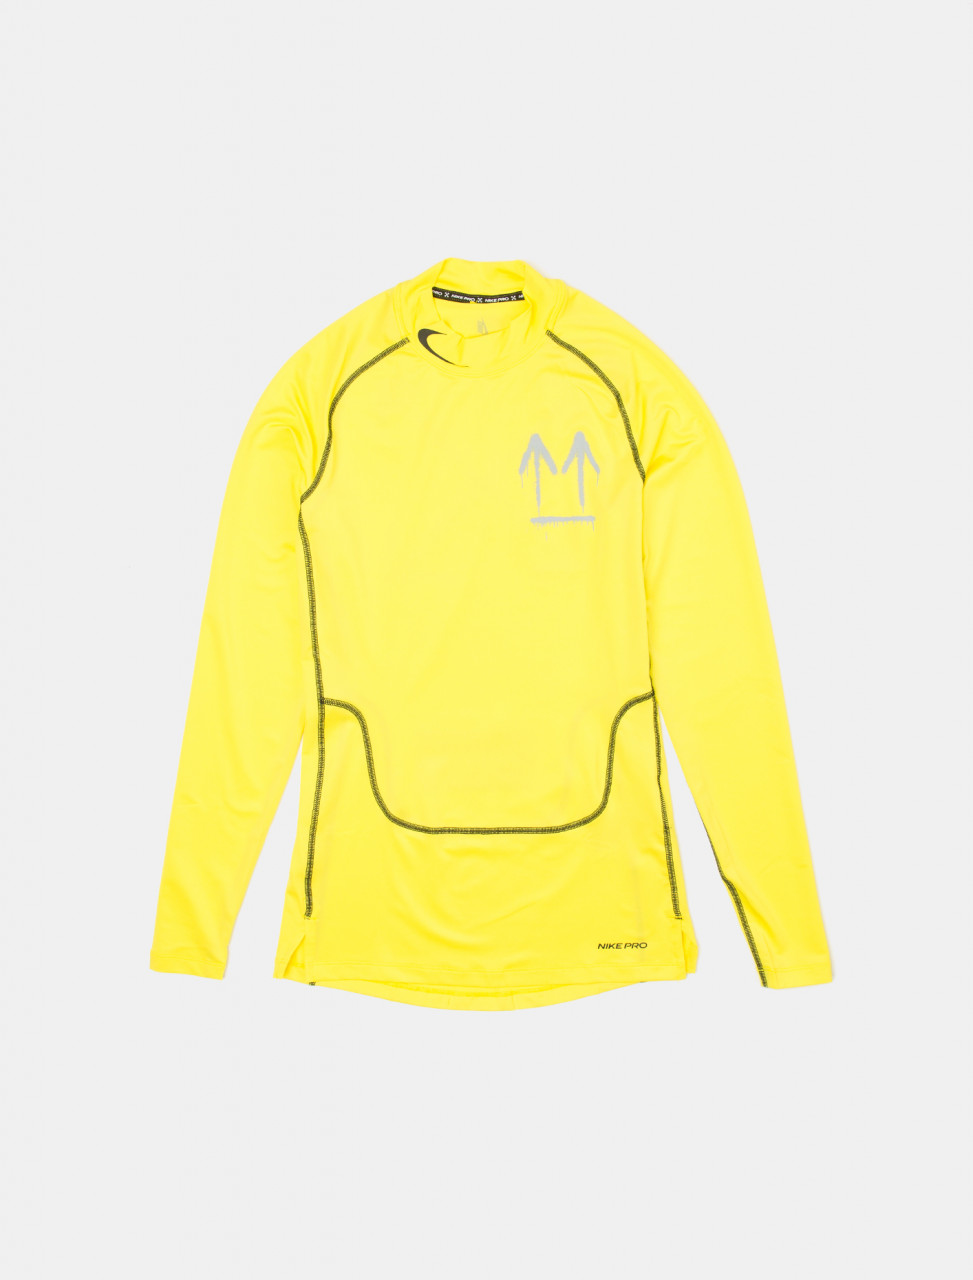 x Off-White Long Sleeve Top in Optic Yellow